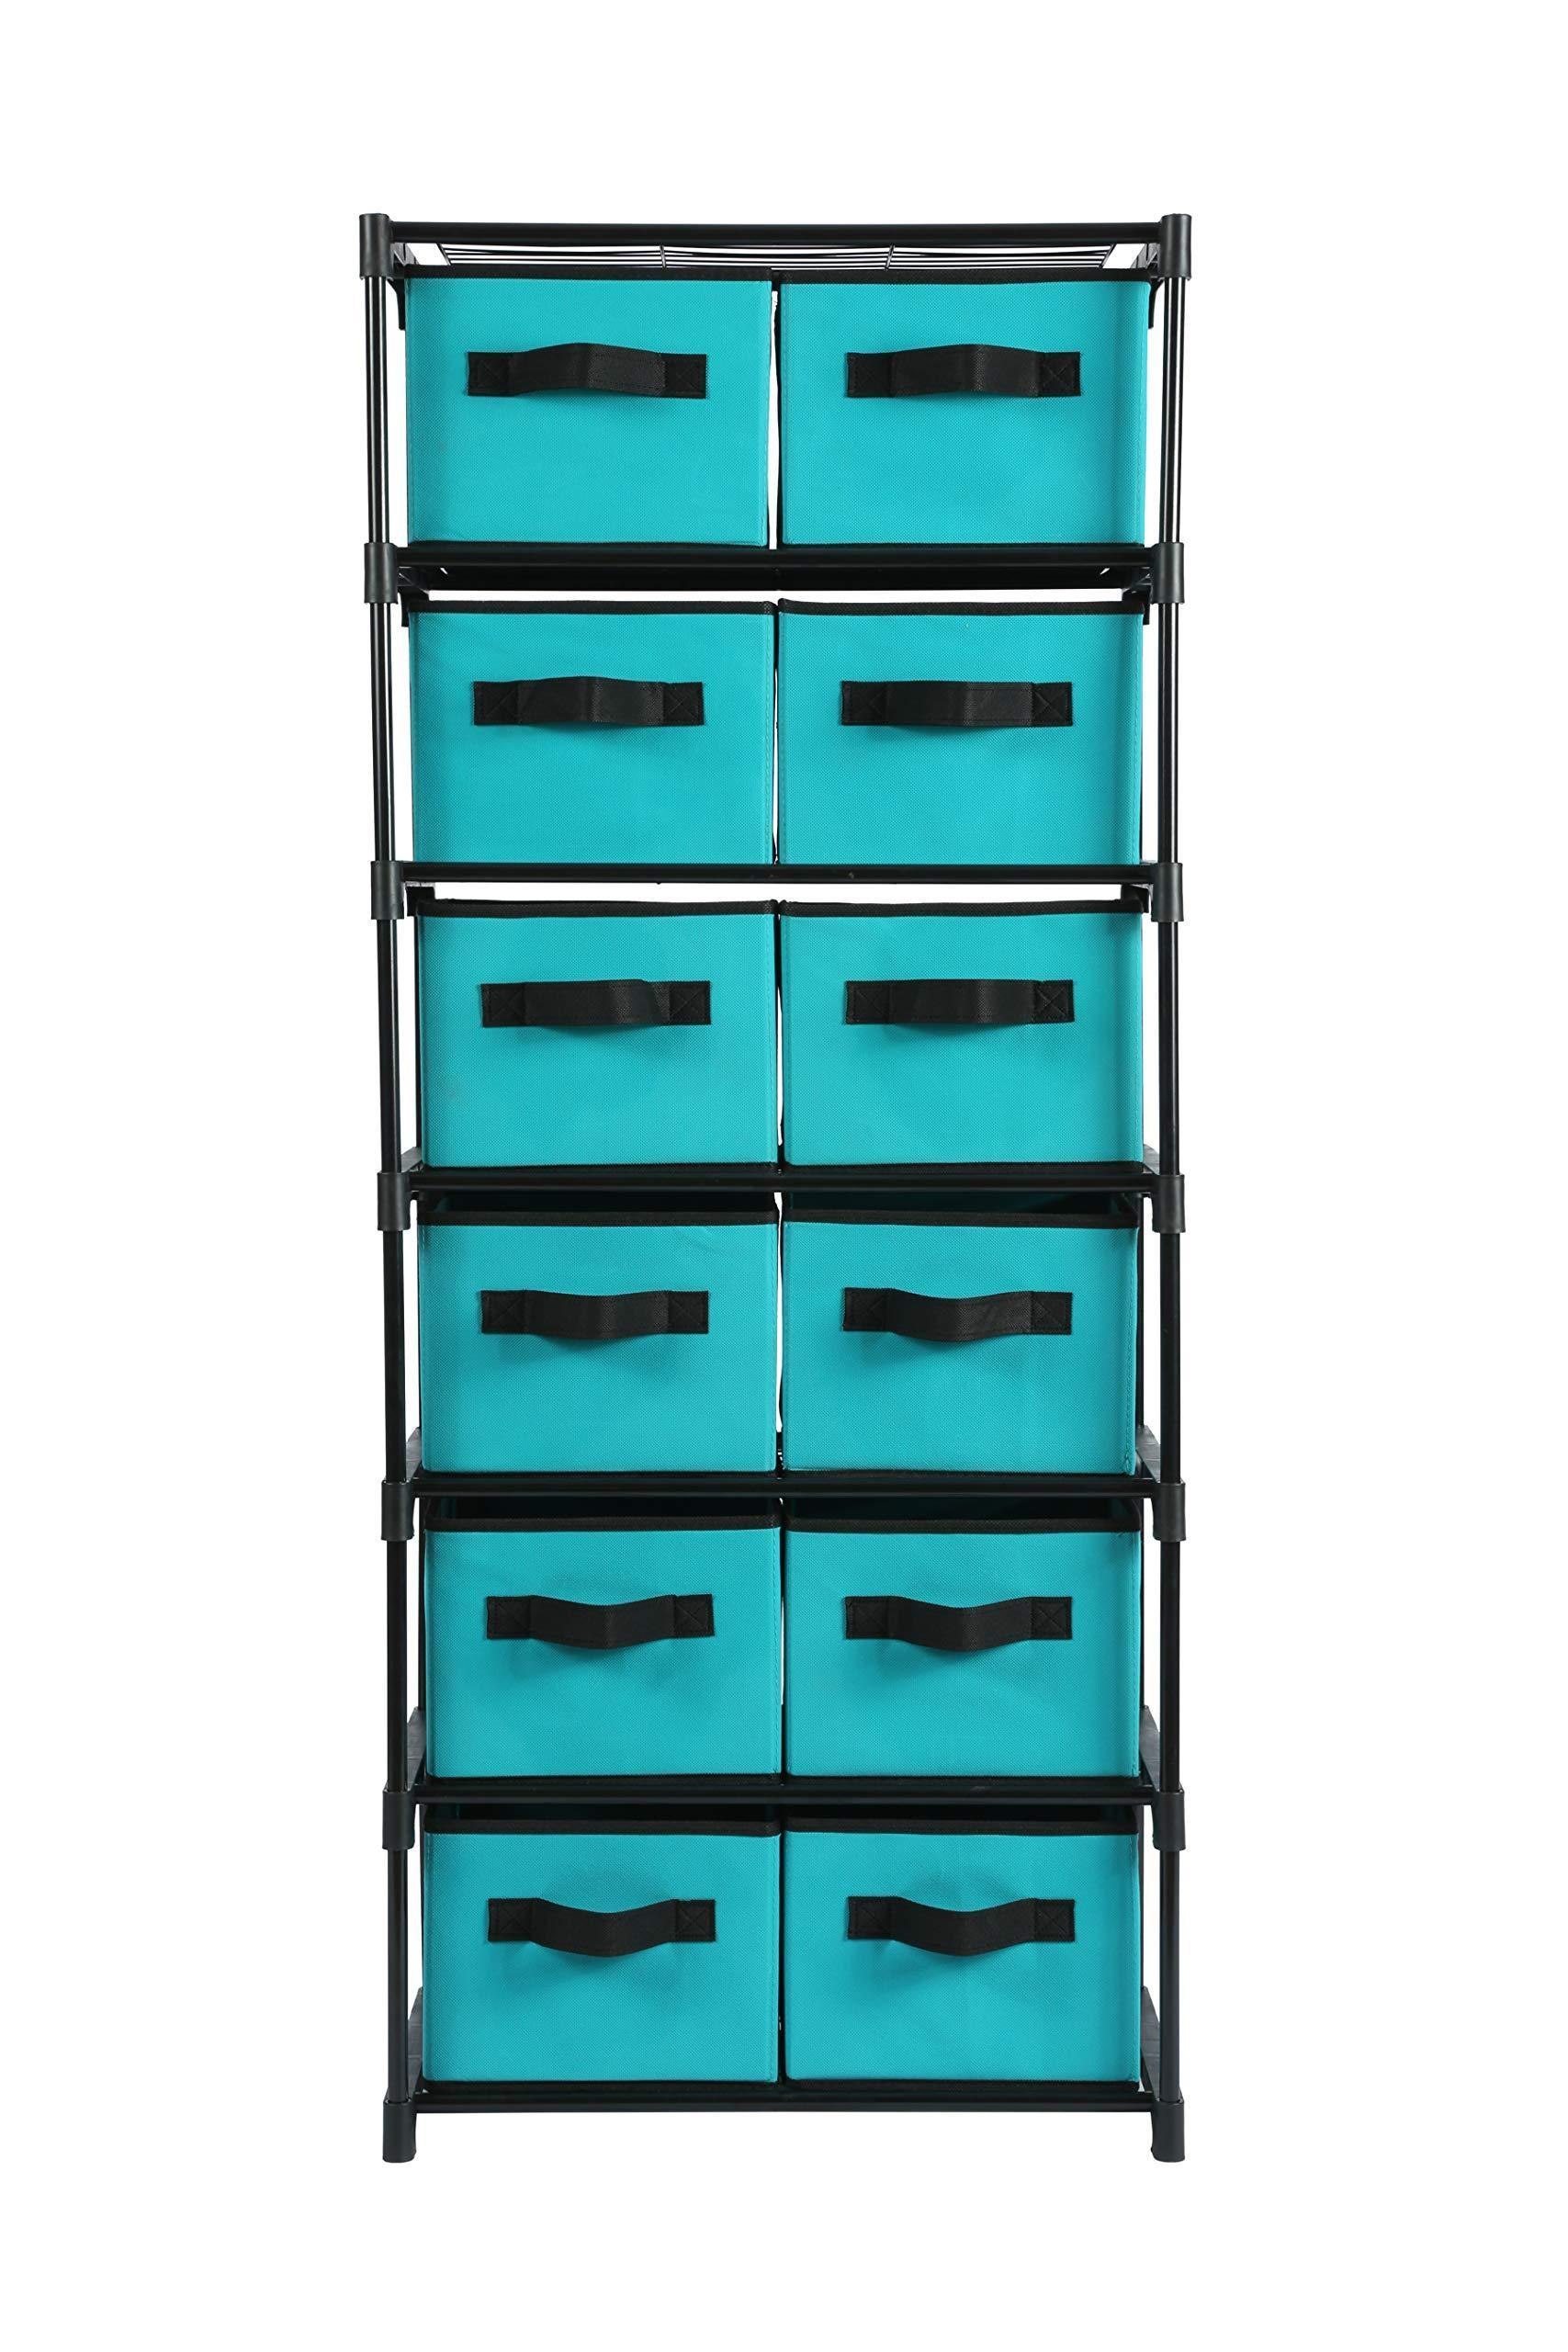 Results homebi storage chest shelf unit 12 drawer storage cabinet with 6 tier metal wire shelf and 12 removable non woven fabric bins in turquoise 20 67w x 12d x49 21h